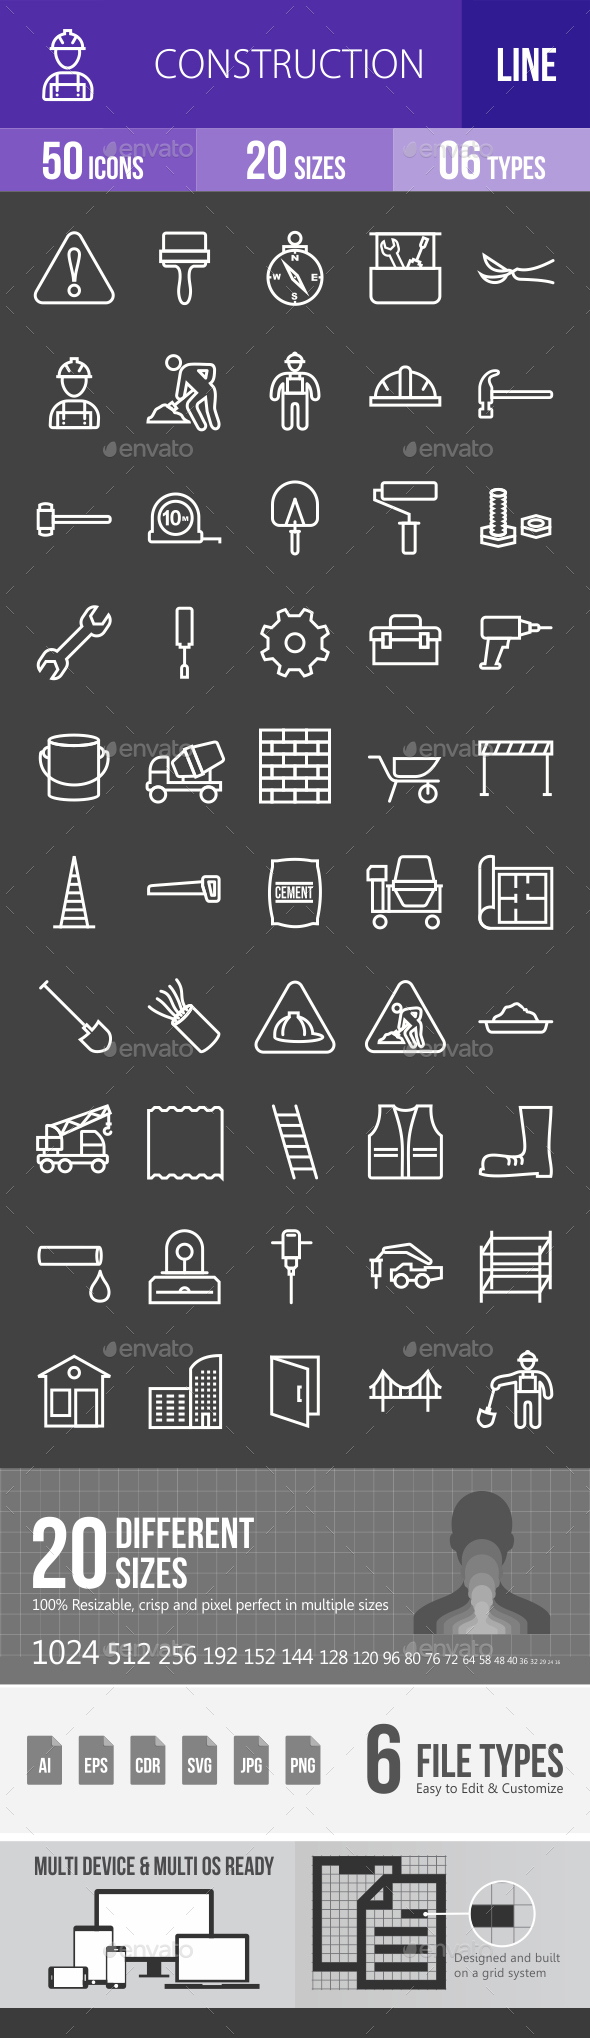 Construction Line Inverted Icons - Icons